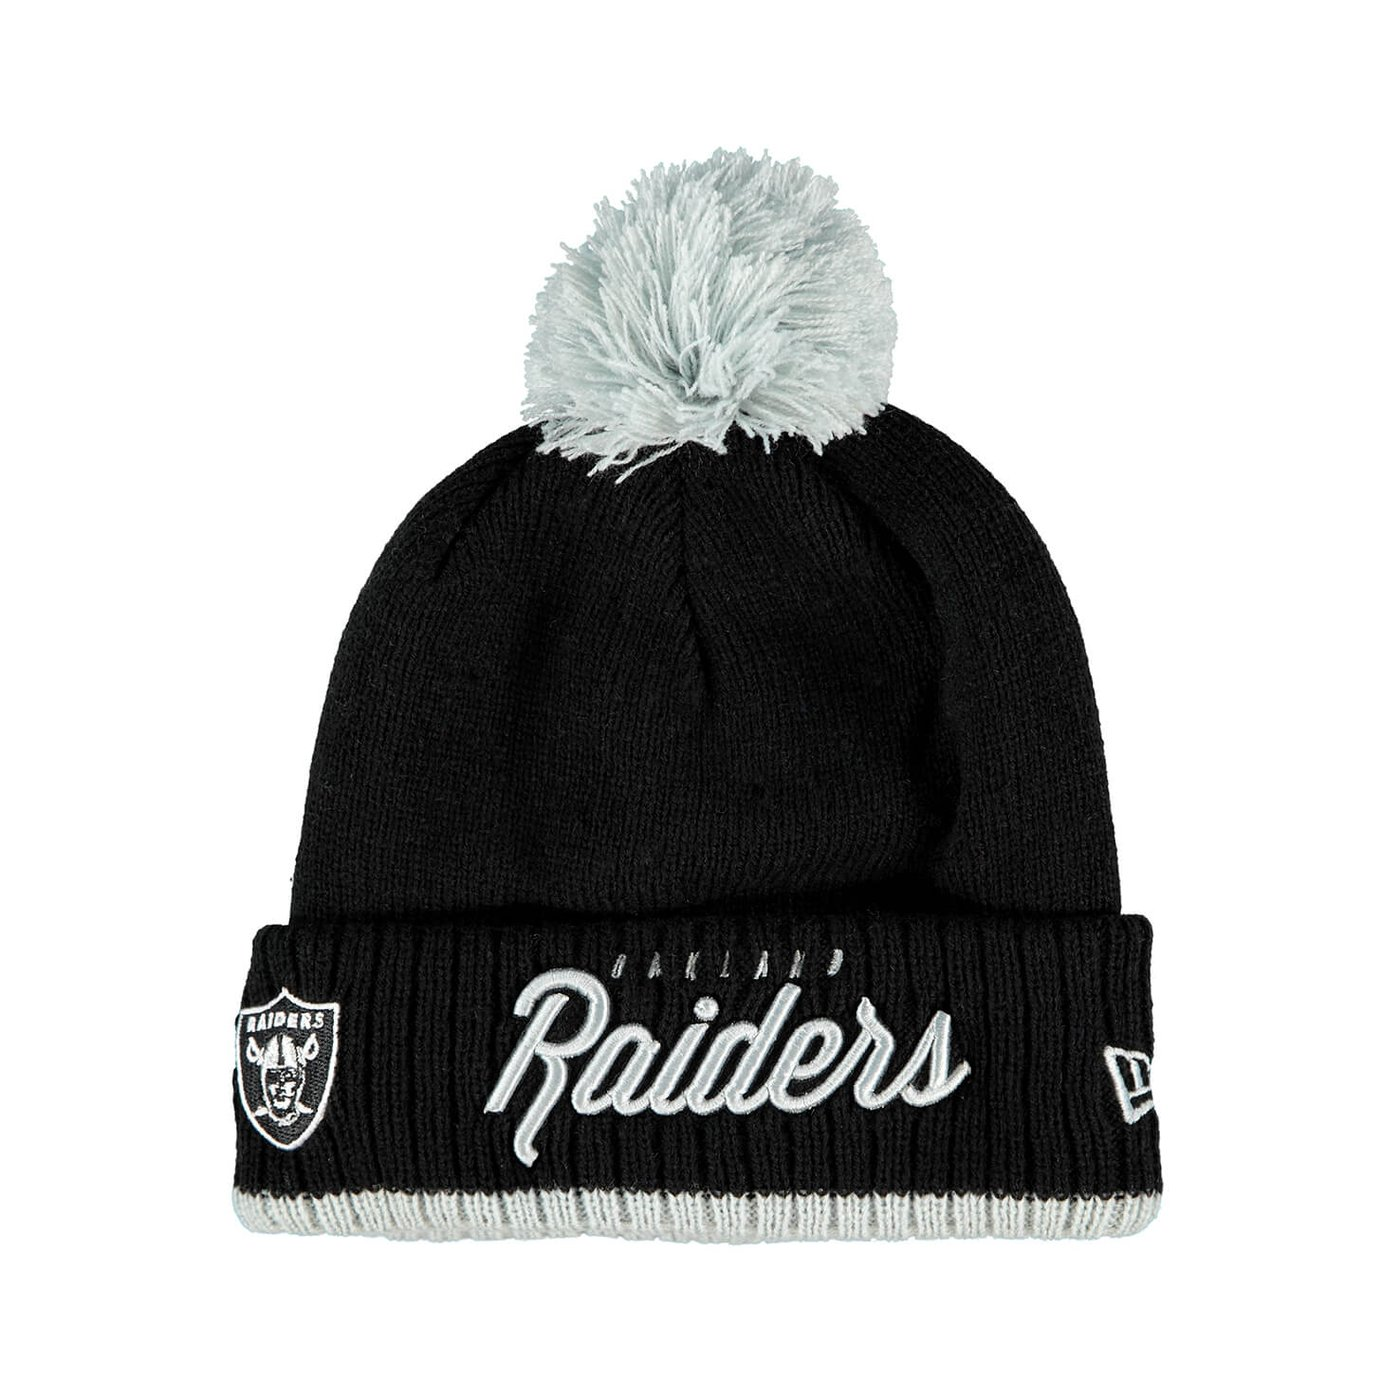 New Era Oakland Raiders Unisex Siyah Bere